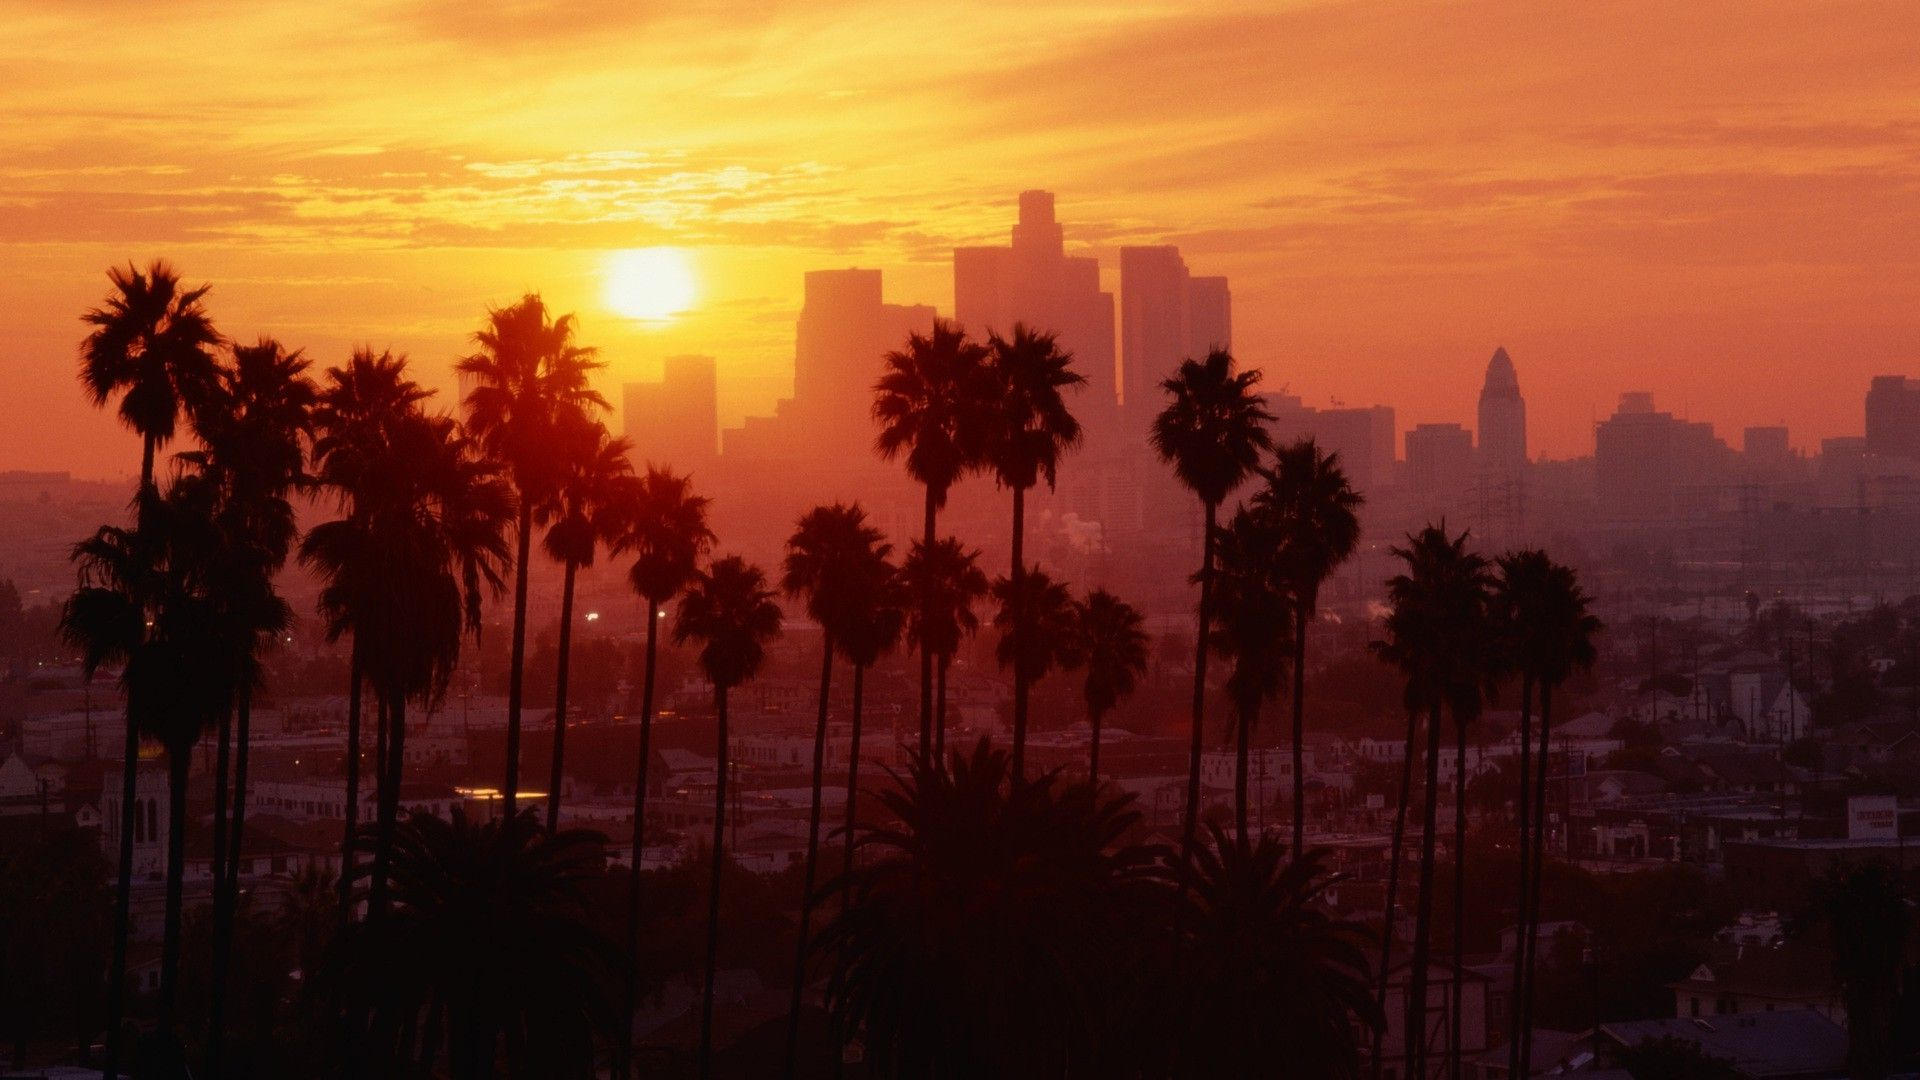 Download Hd Wallpapers Of 142660 Los Angeles Sunset Palm Trees Free Download High Quality And Los Angeles Palm Trees Tree Hd Wallpaper Palm Trees Wallpaper